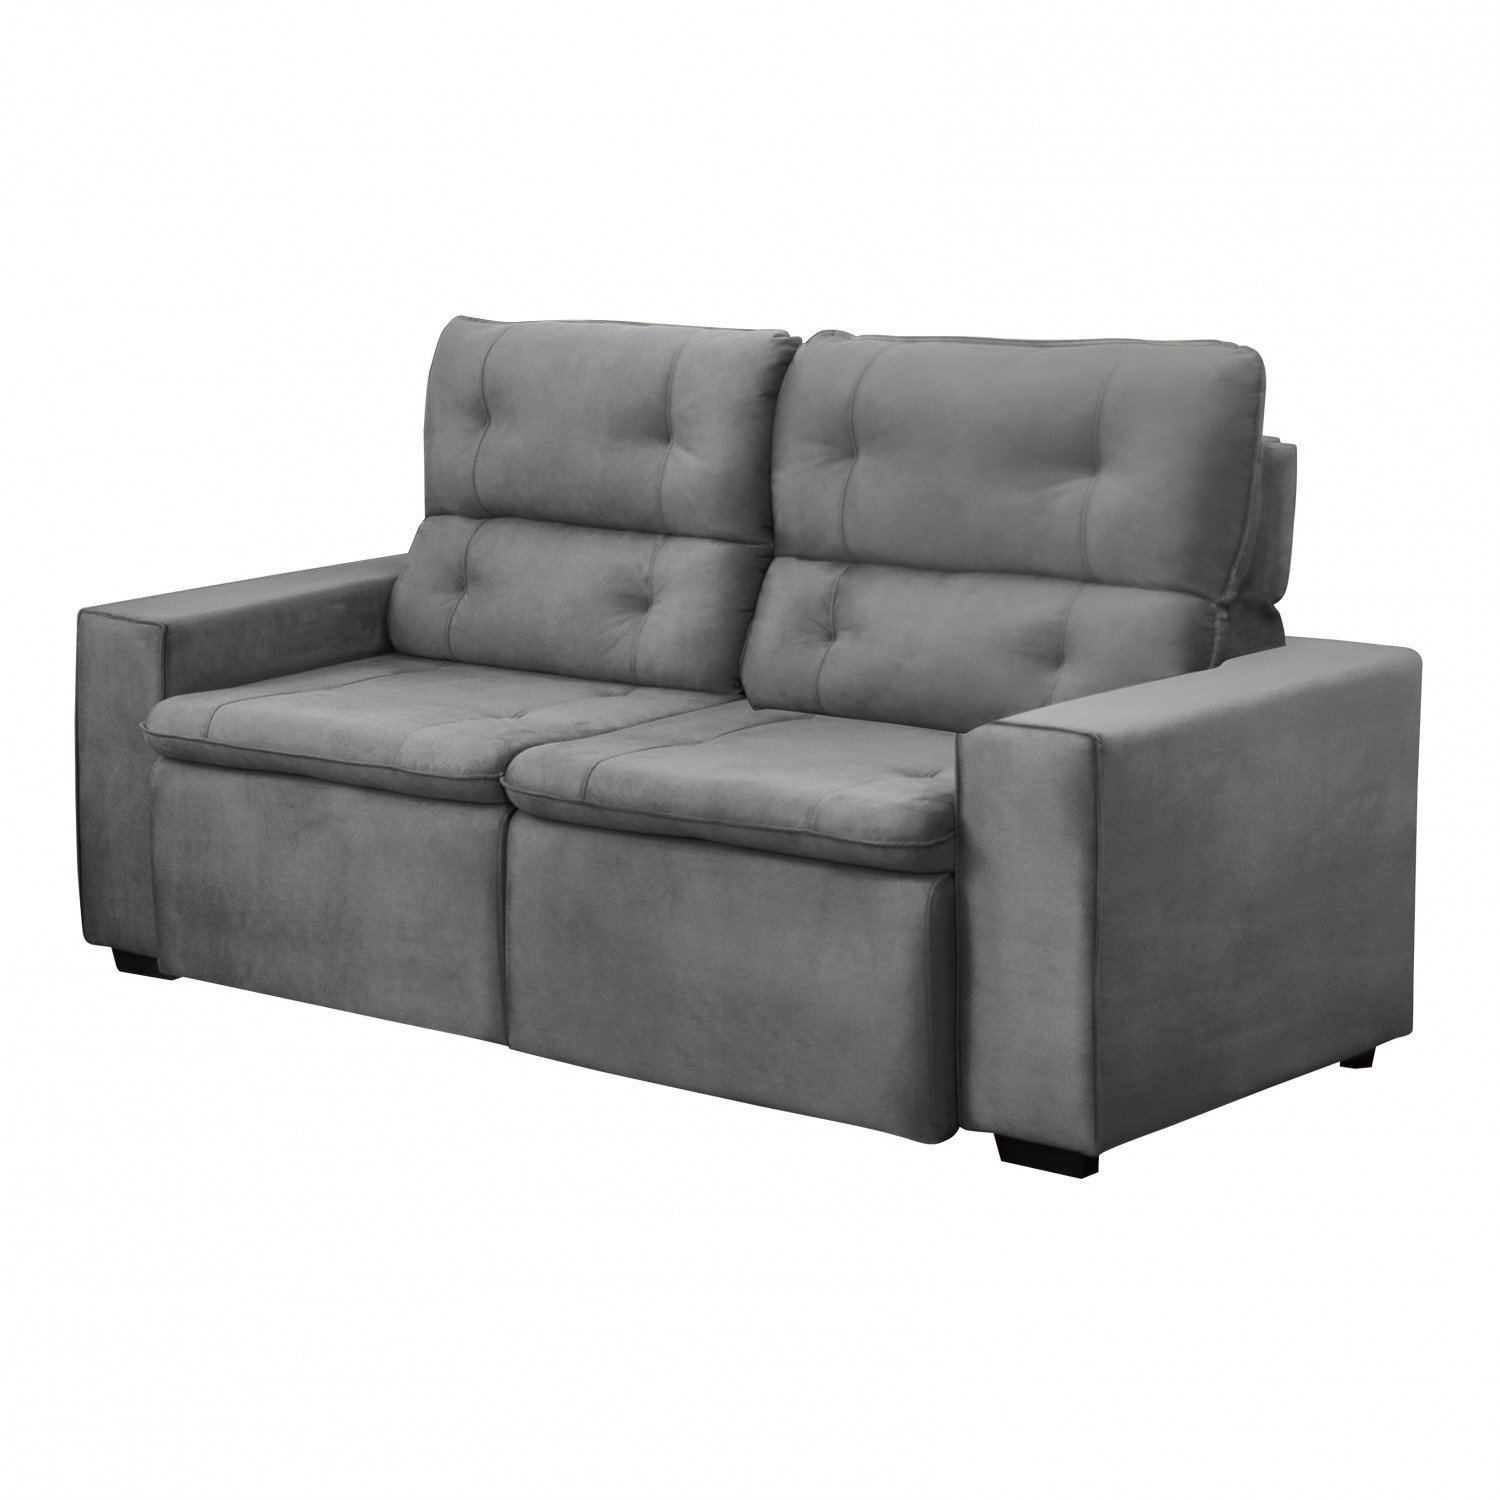 Sofa Retratil E Reclinavel 3 Lugares Angelo 196cm Gralha Azul Cinza